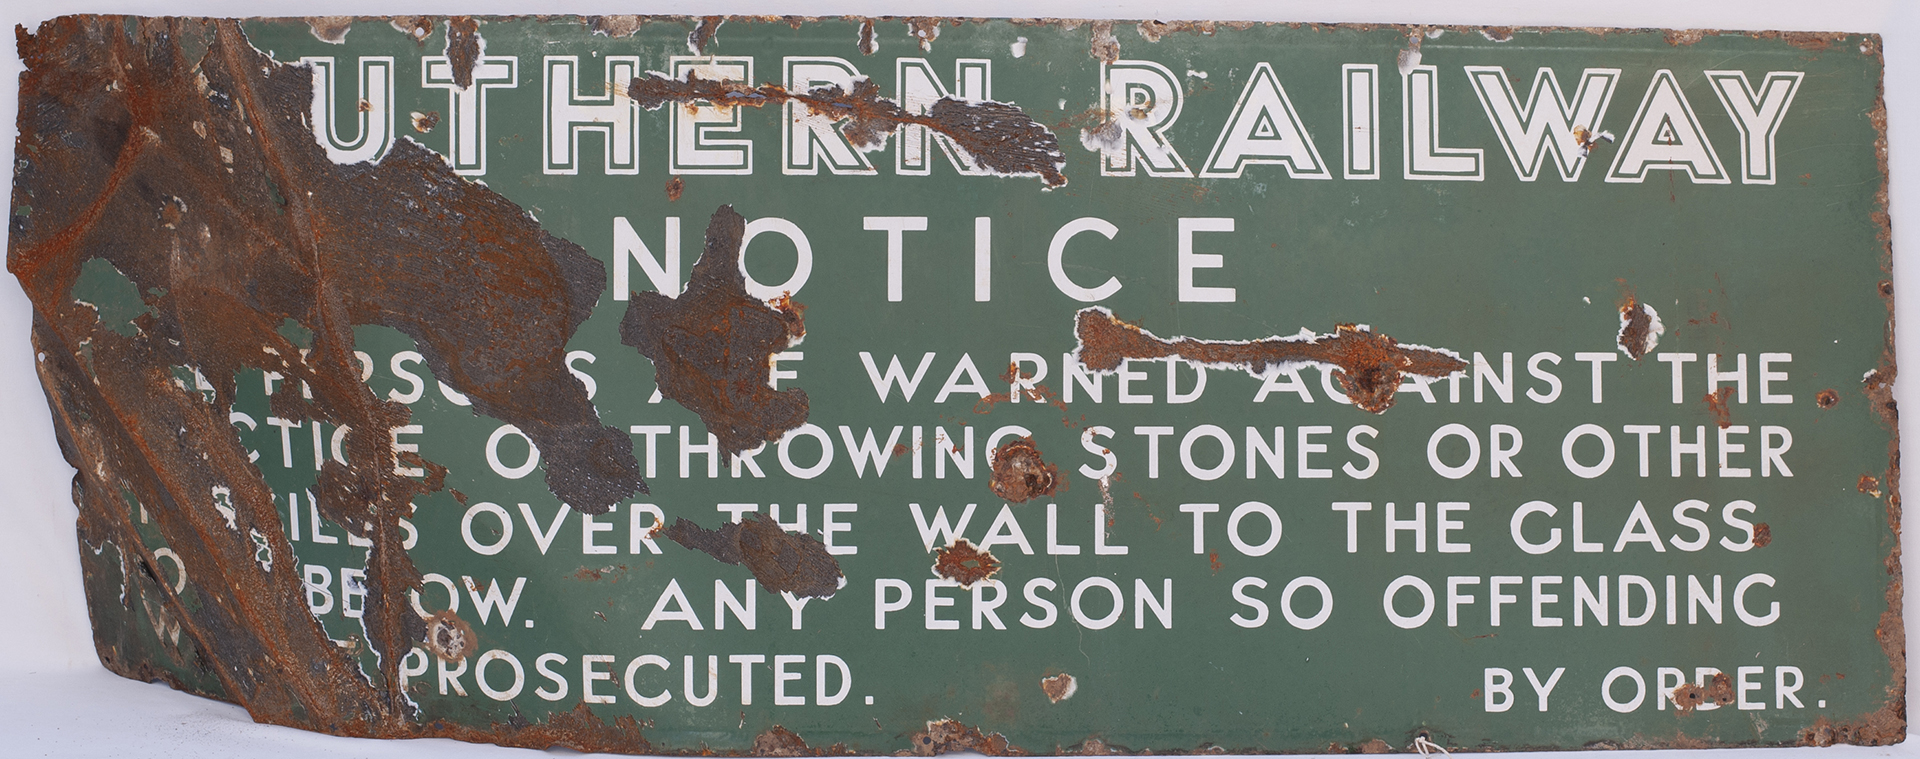 Southern Railway Enamel Sign. Ref Throwing stones over the wall etc. Recovered from Brighton Station